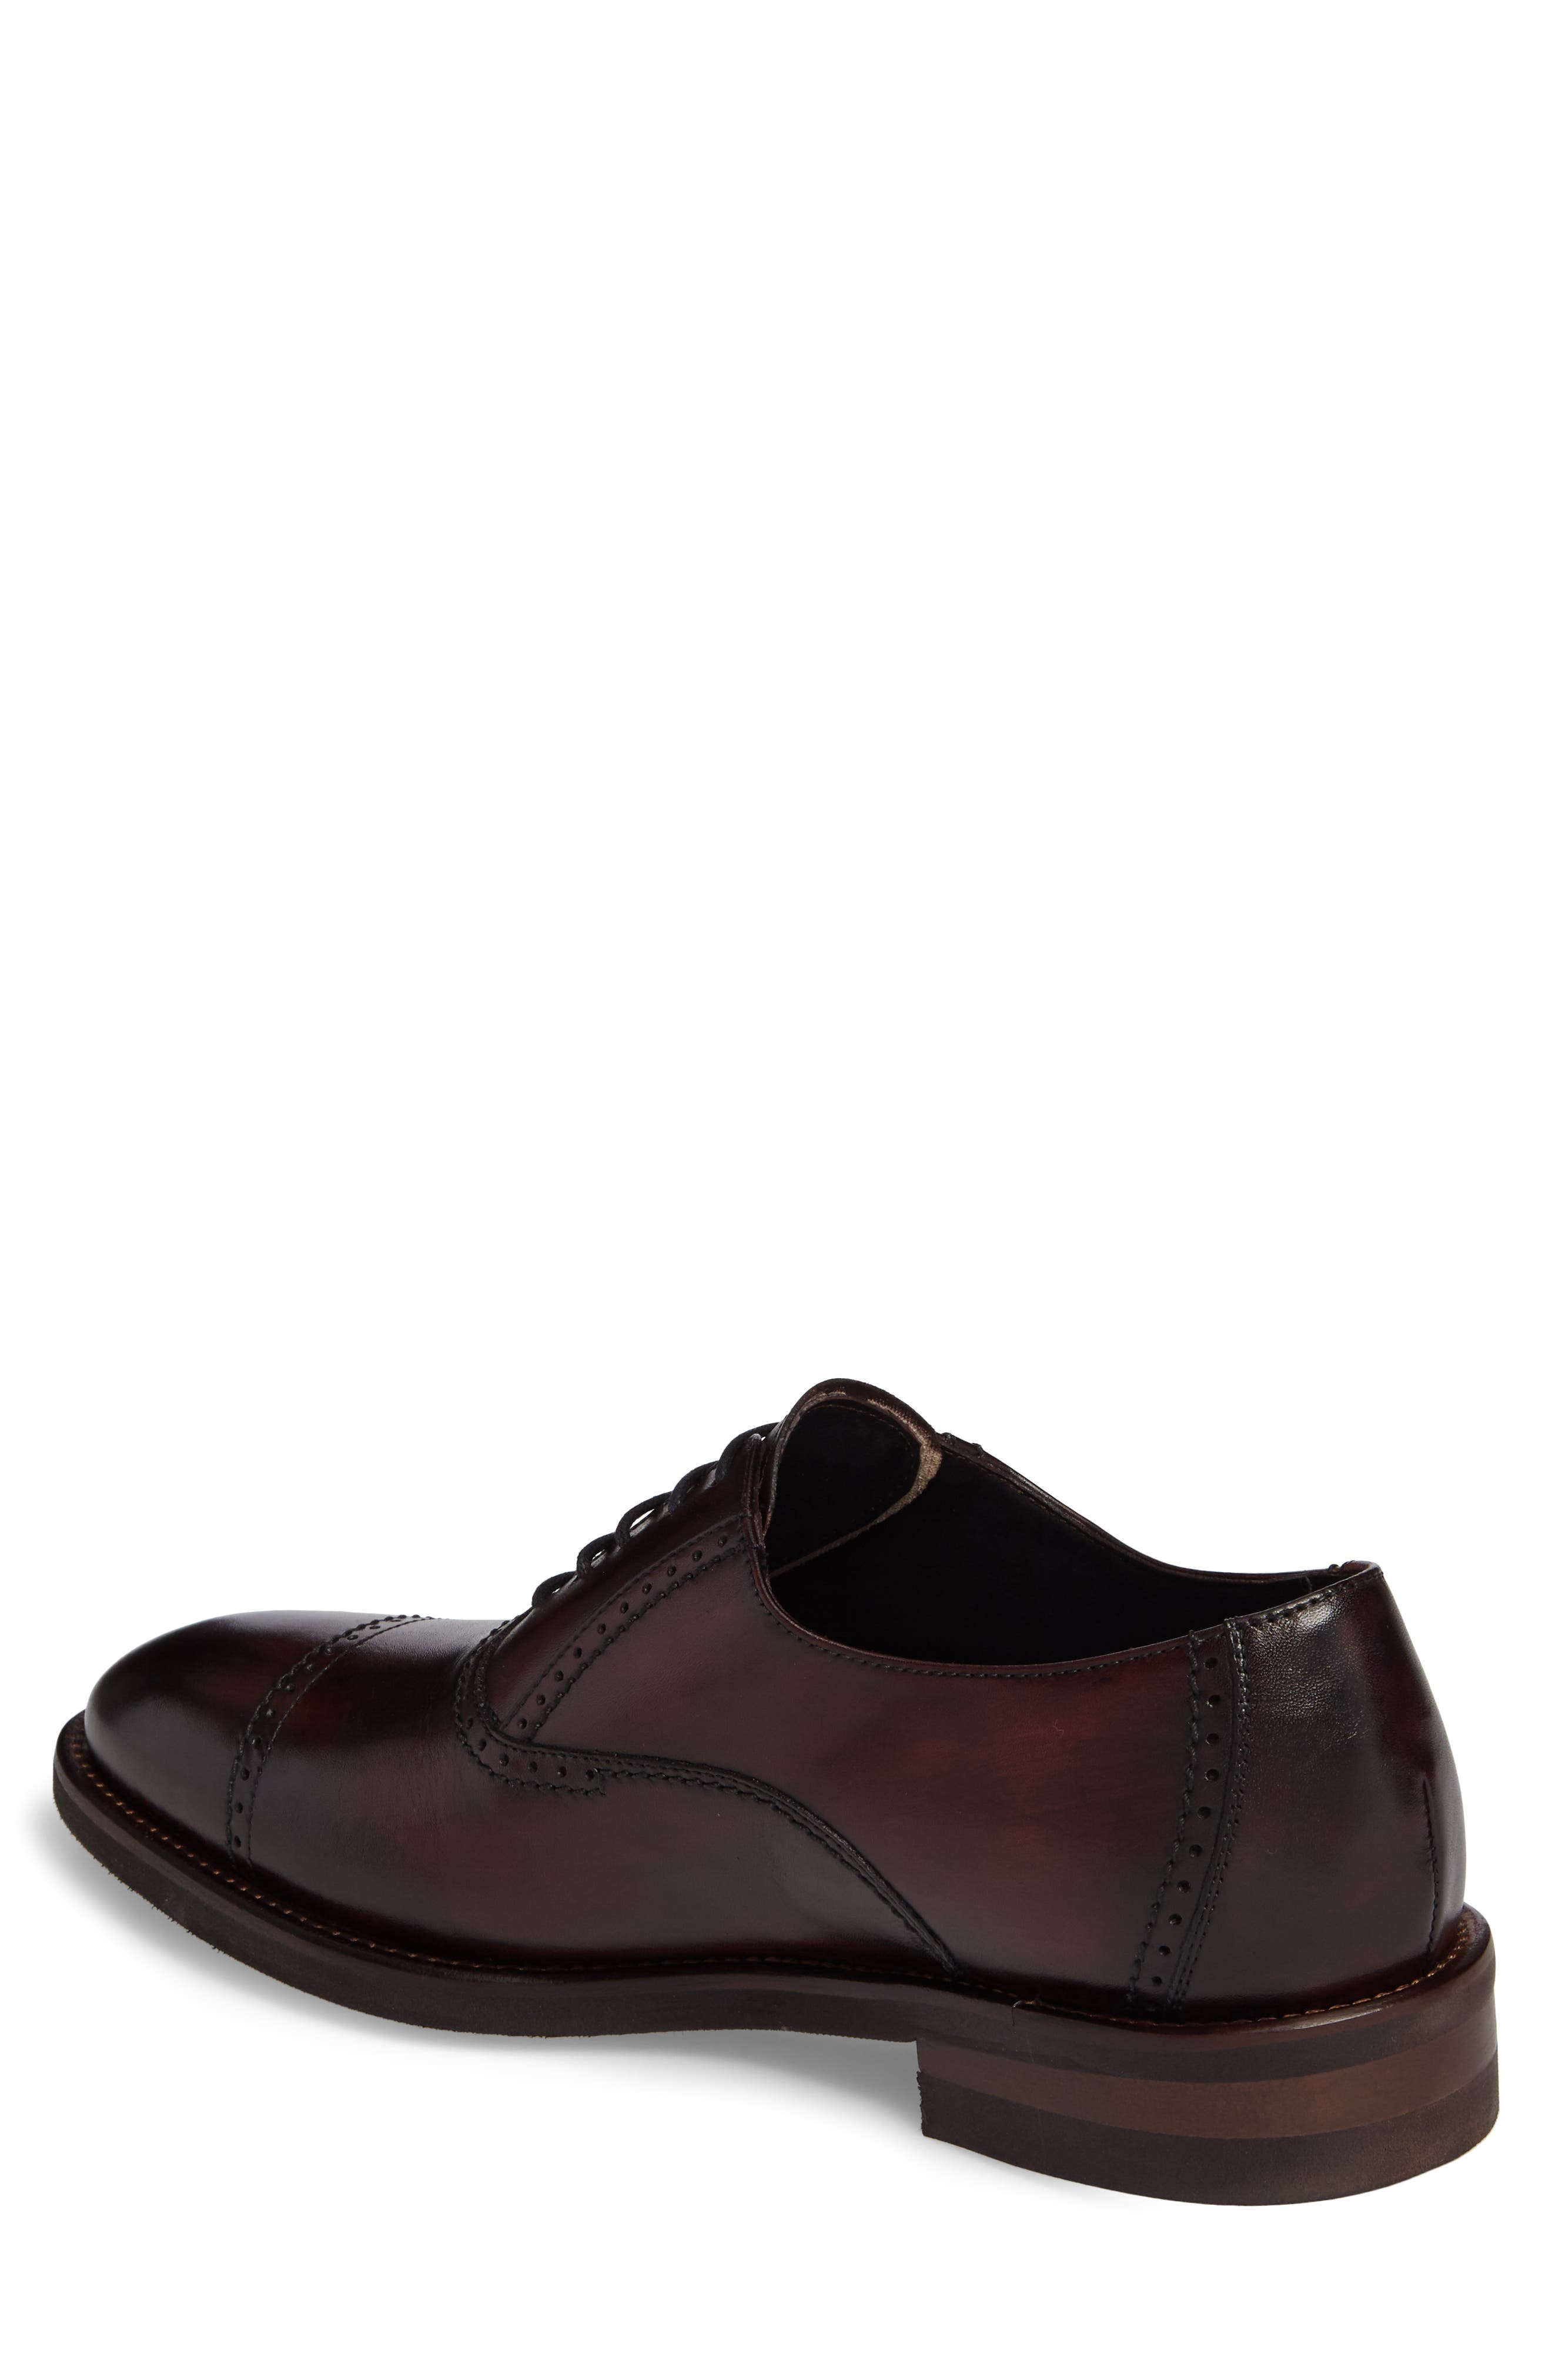 Alternate Image 2  - Monte Rosso Borgo Cap Toe Oxford (Men)